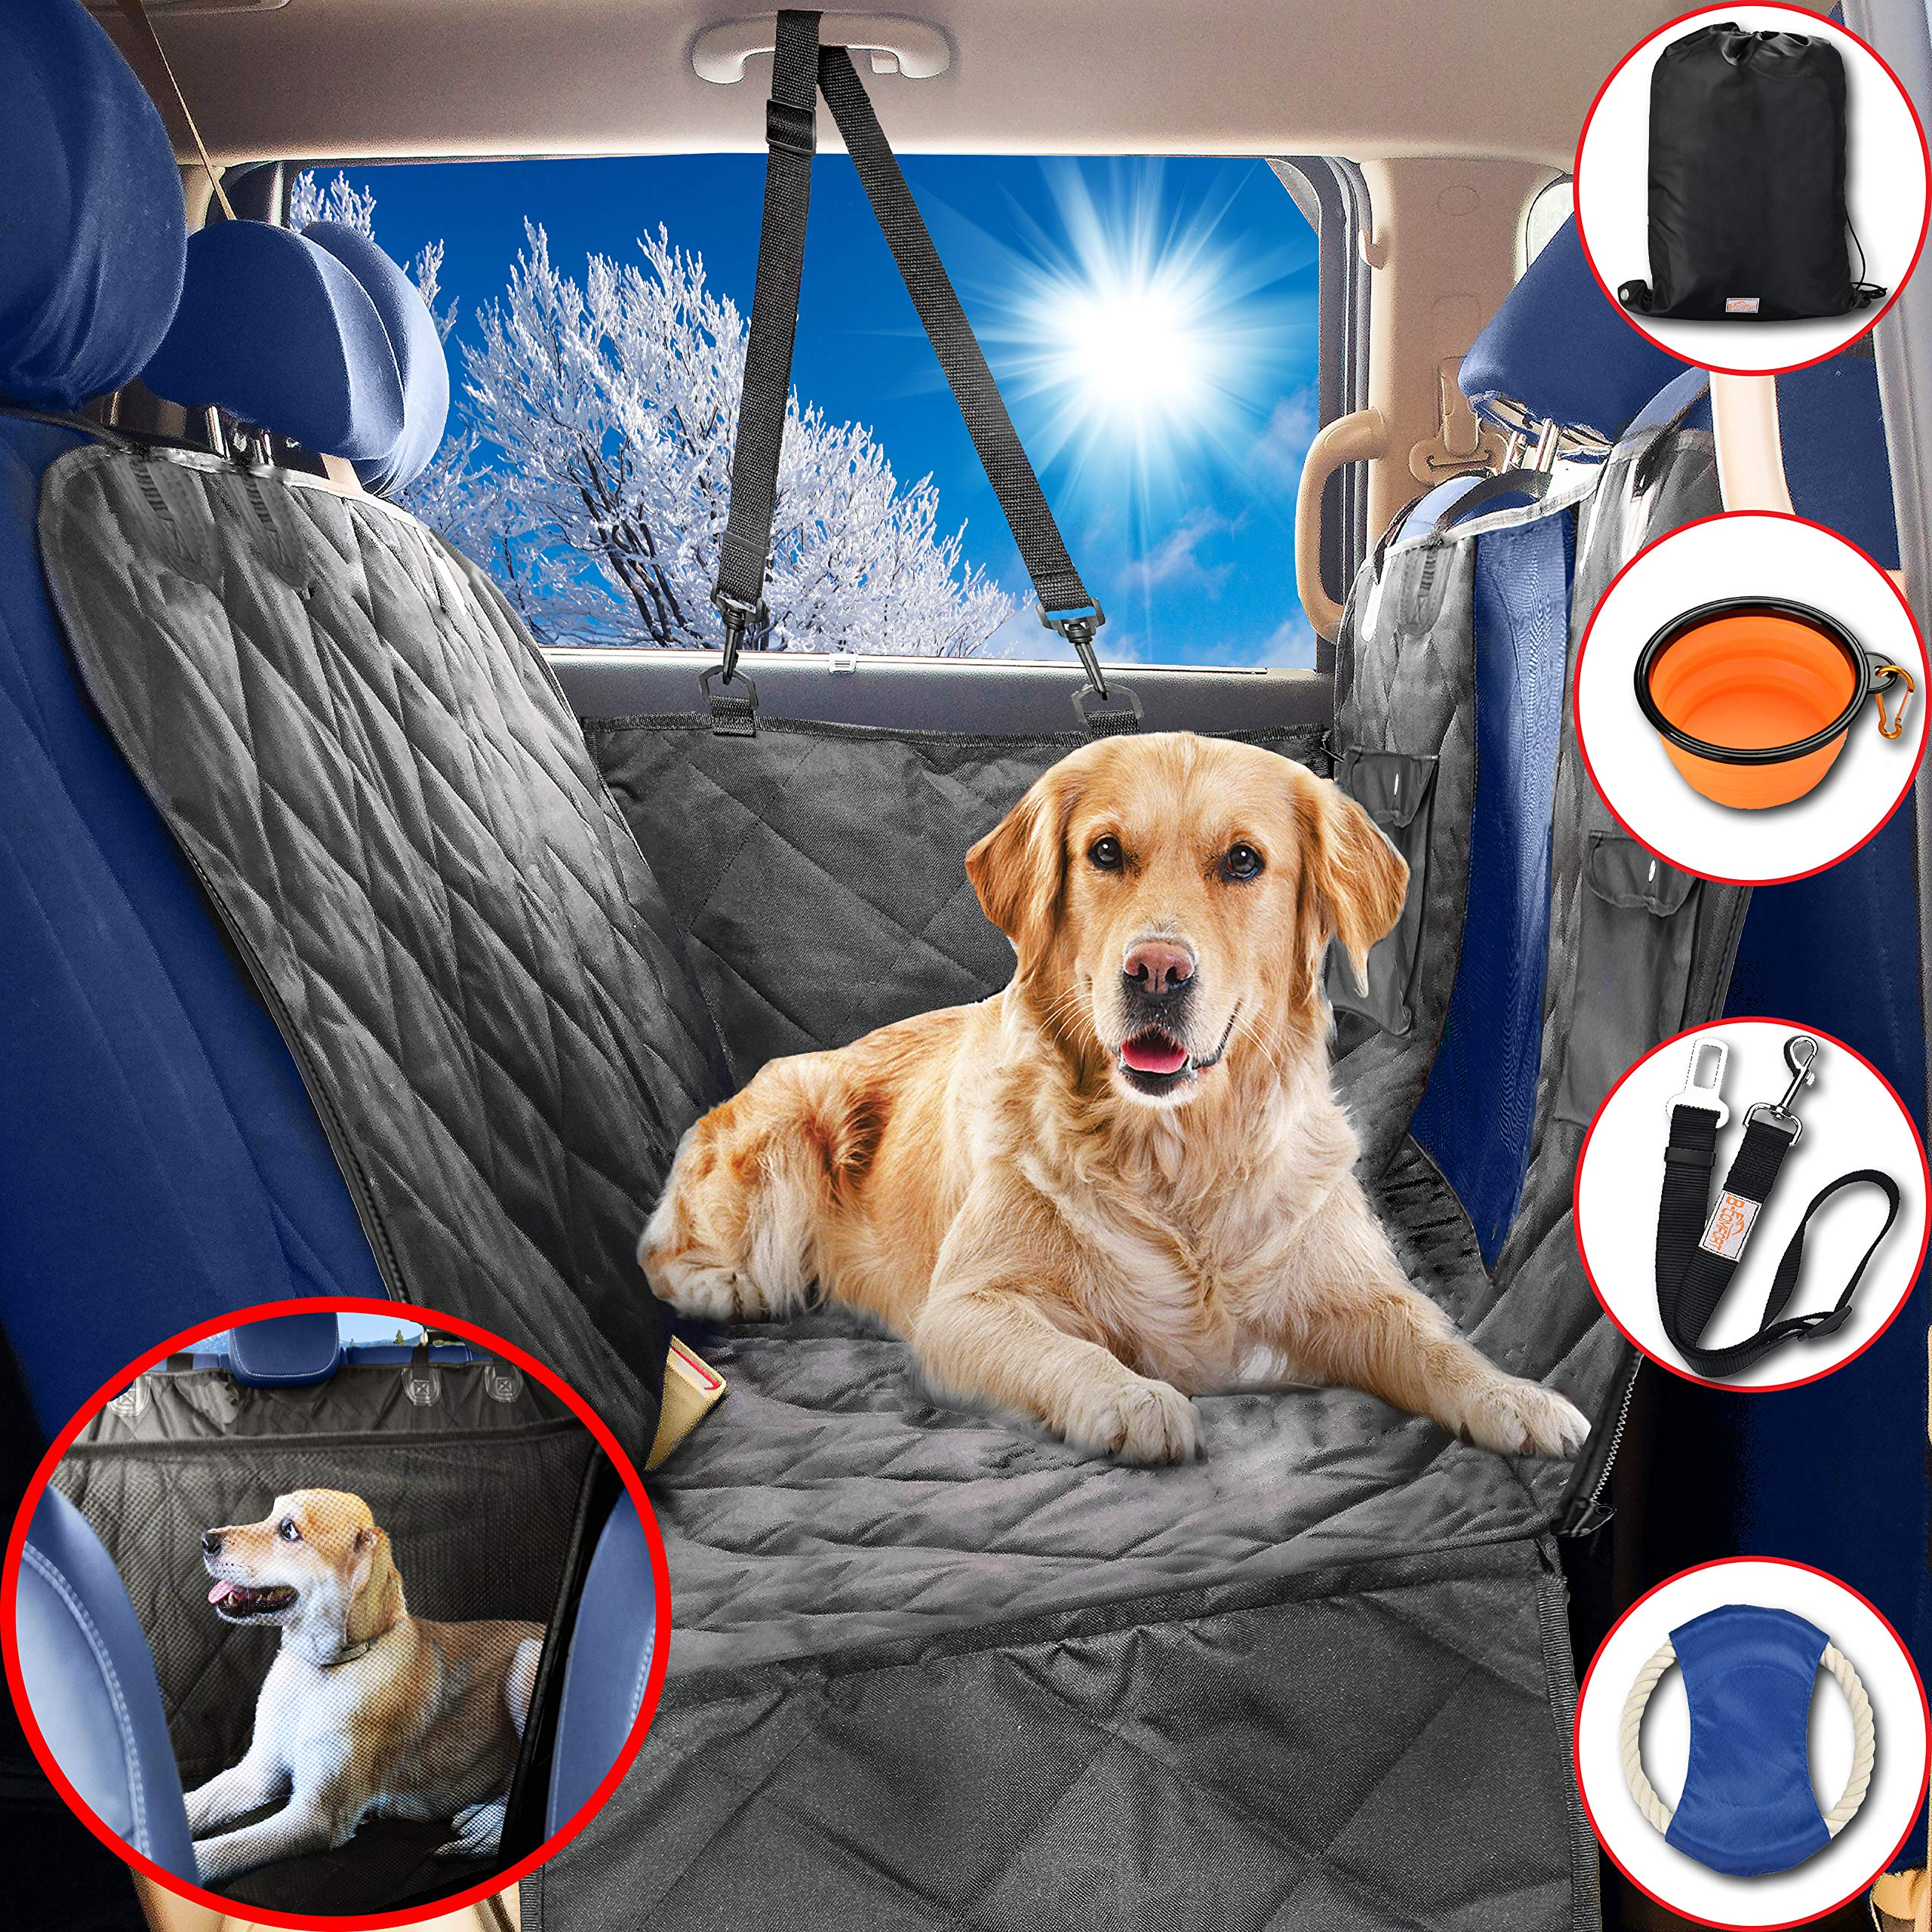 Dog Car Seat Covers Hammock for Pets-Back Seat and Doors Protector-Unique Mesh Window Backseat Barrier-Side Flaps,Leak-proof,Anti-Scratch,Nonslip,Machine Washable-Black-Fits Most Vehicles-54x60